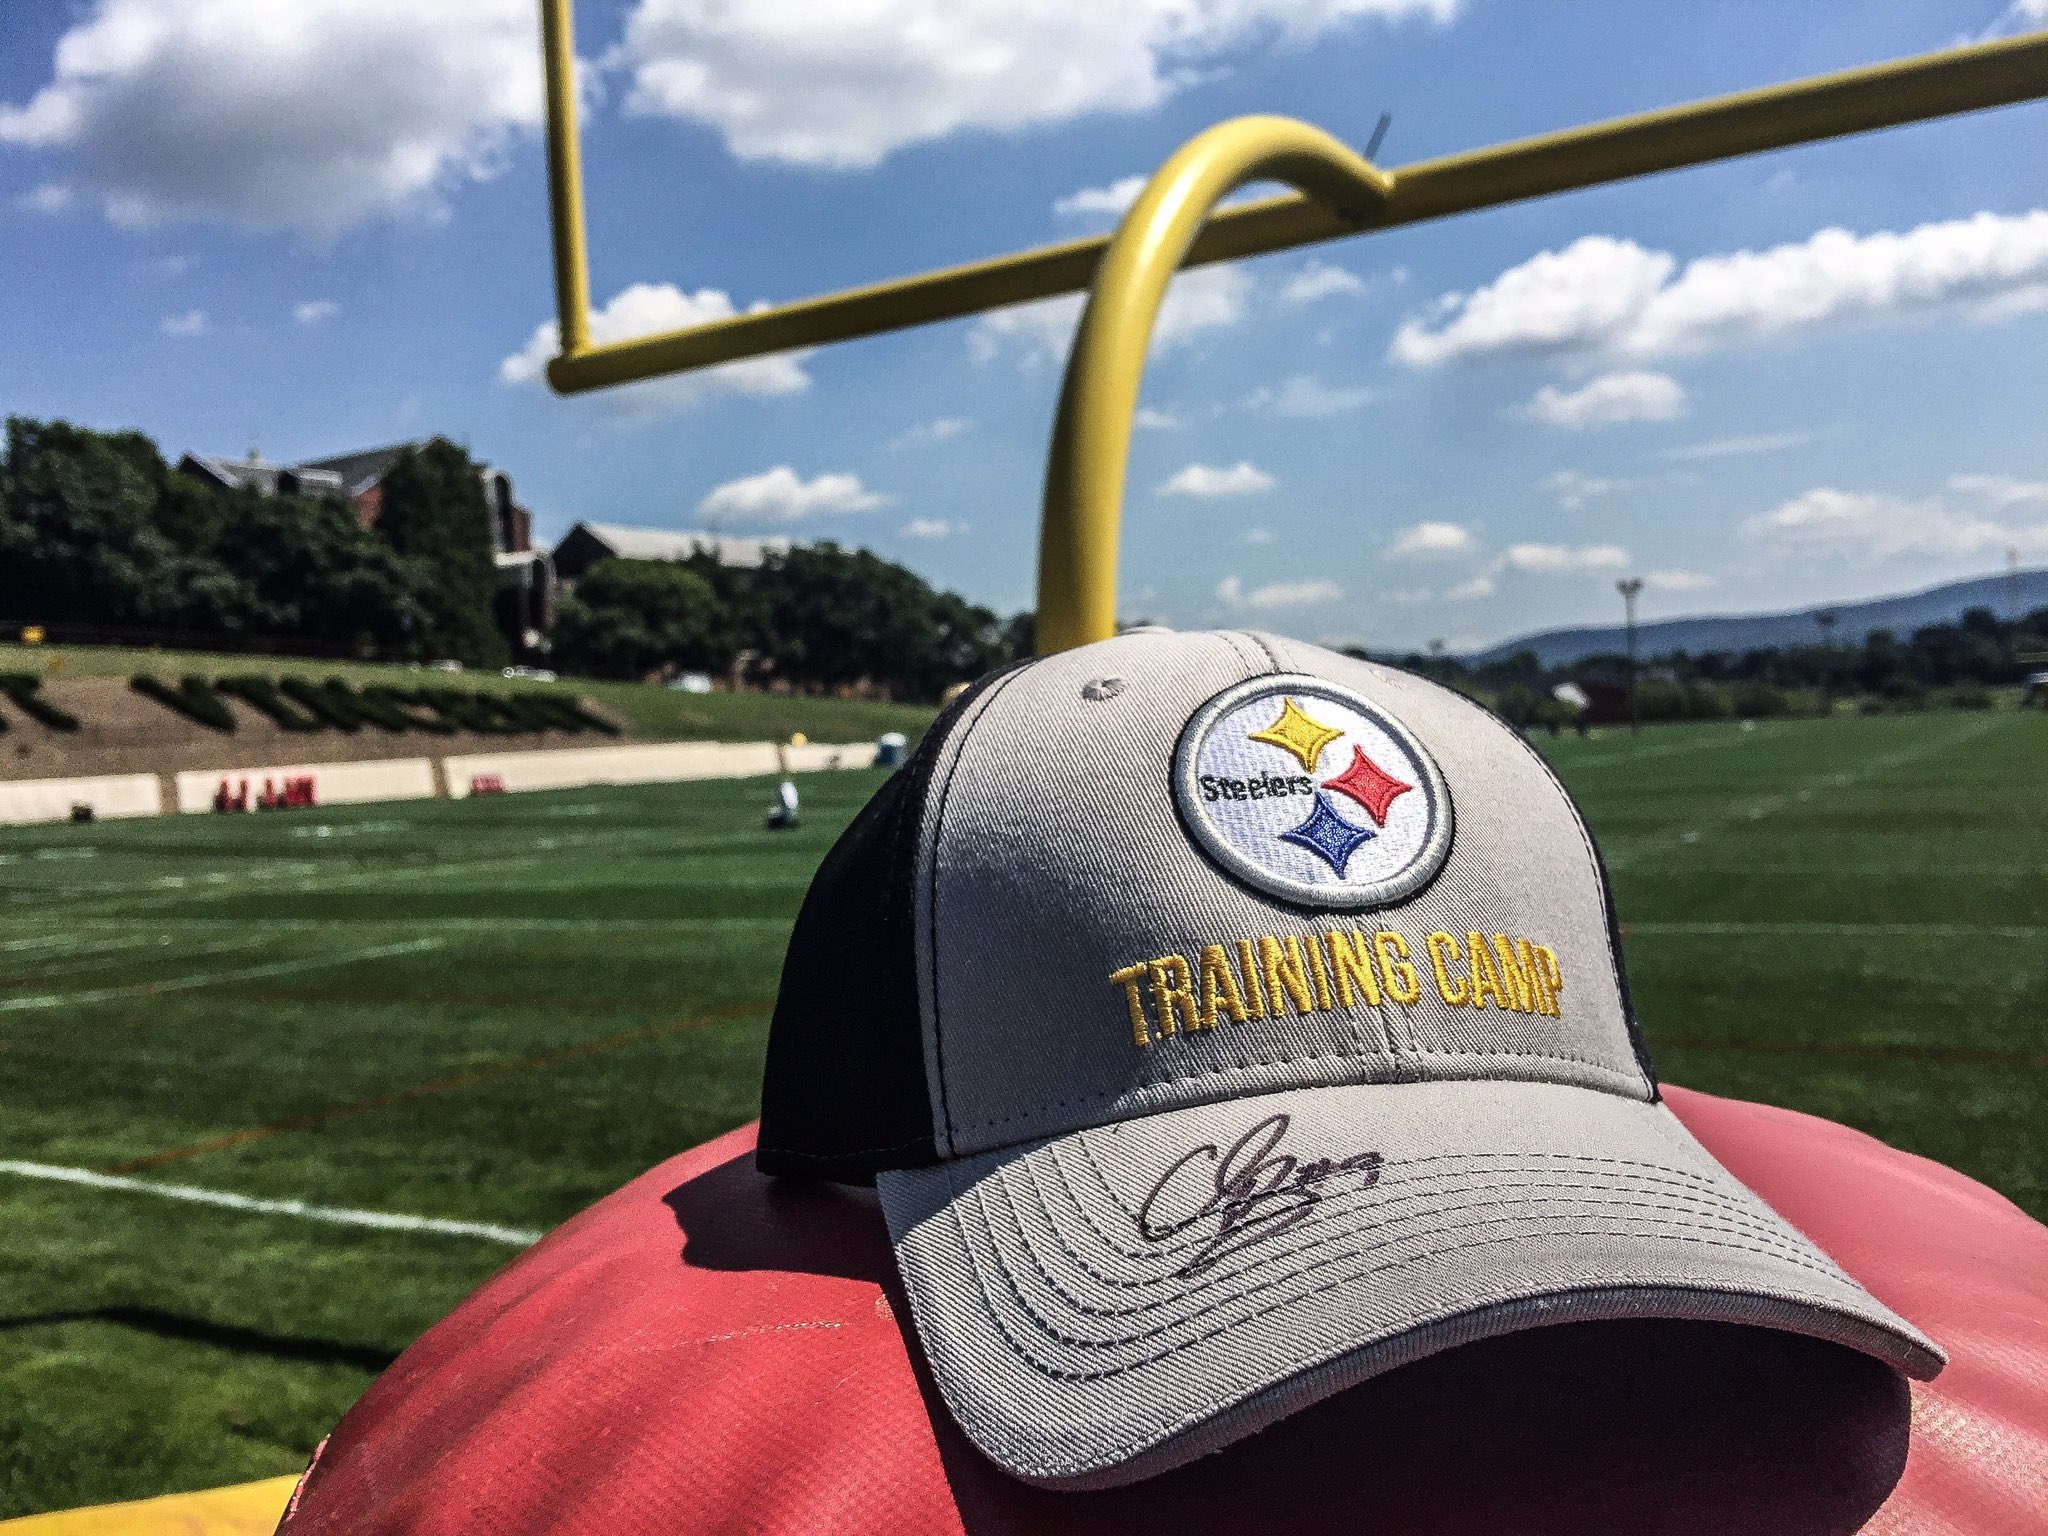 Wanna kick it with this @WizardOfBoz09 autographed hat?  Retweet for your chance to win. �� https://t.co/lEHsVtjBJb